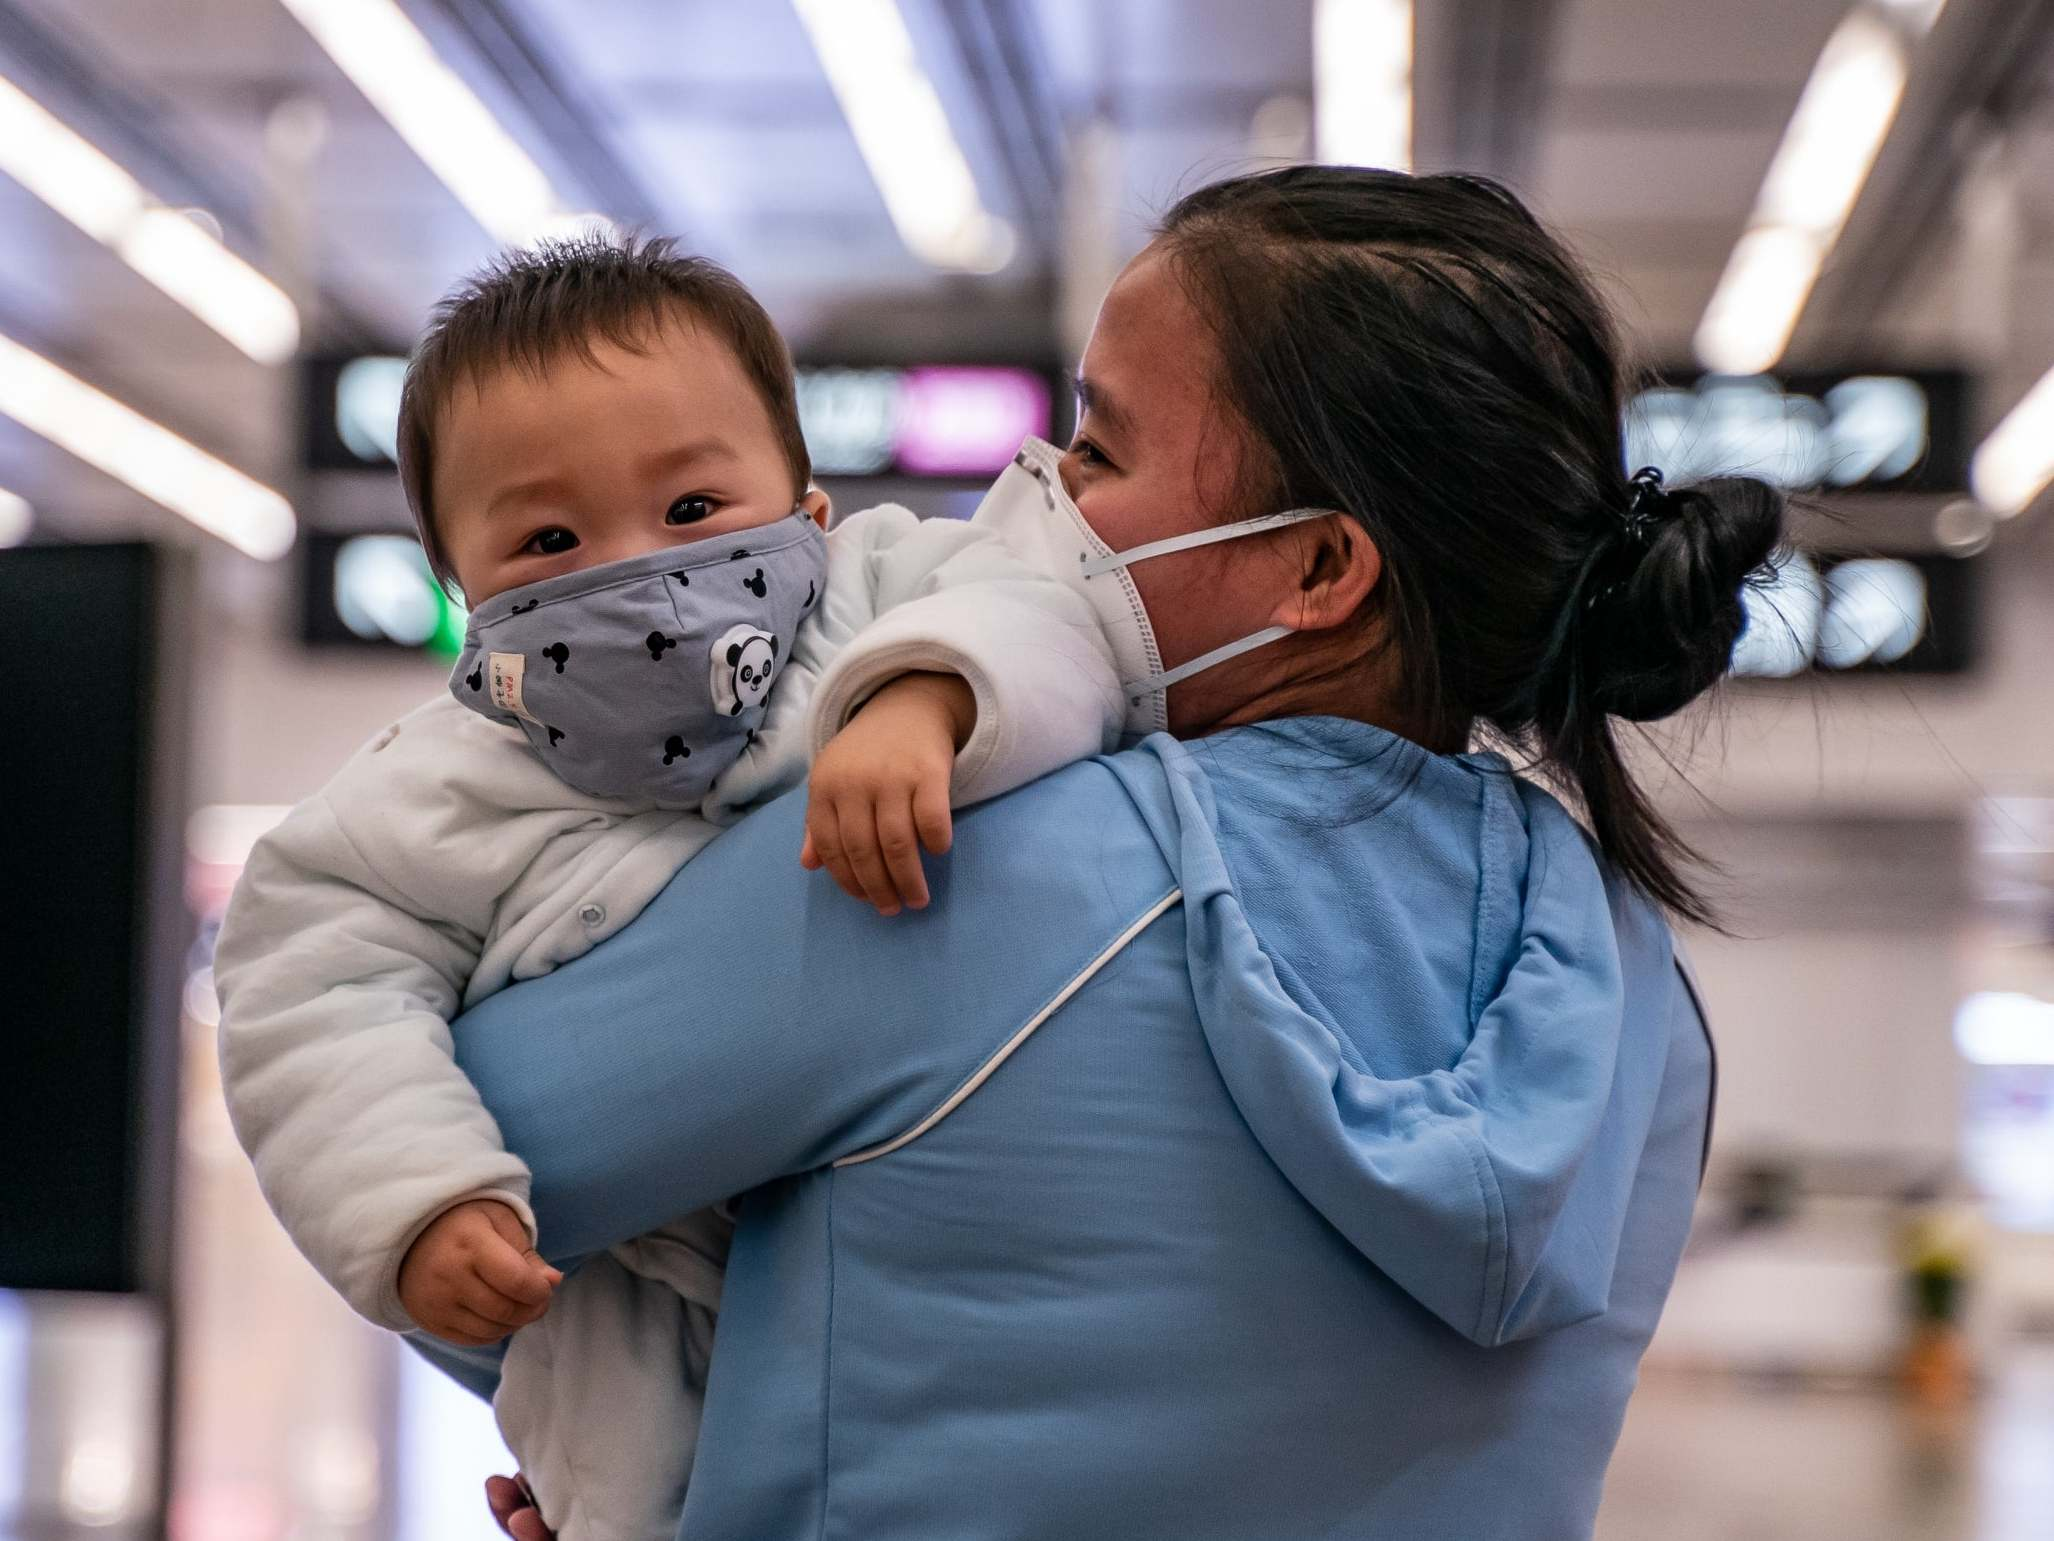 Coronavirus news - live: Outbreak declared international health emergency by WHO, as experts say UK risk has risen photo